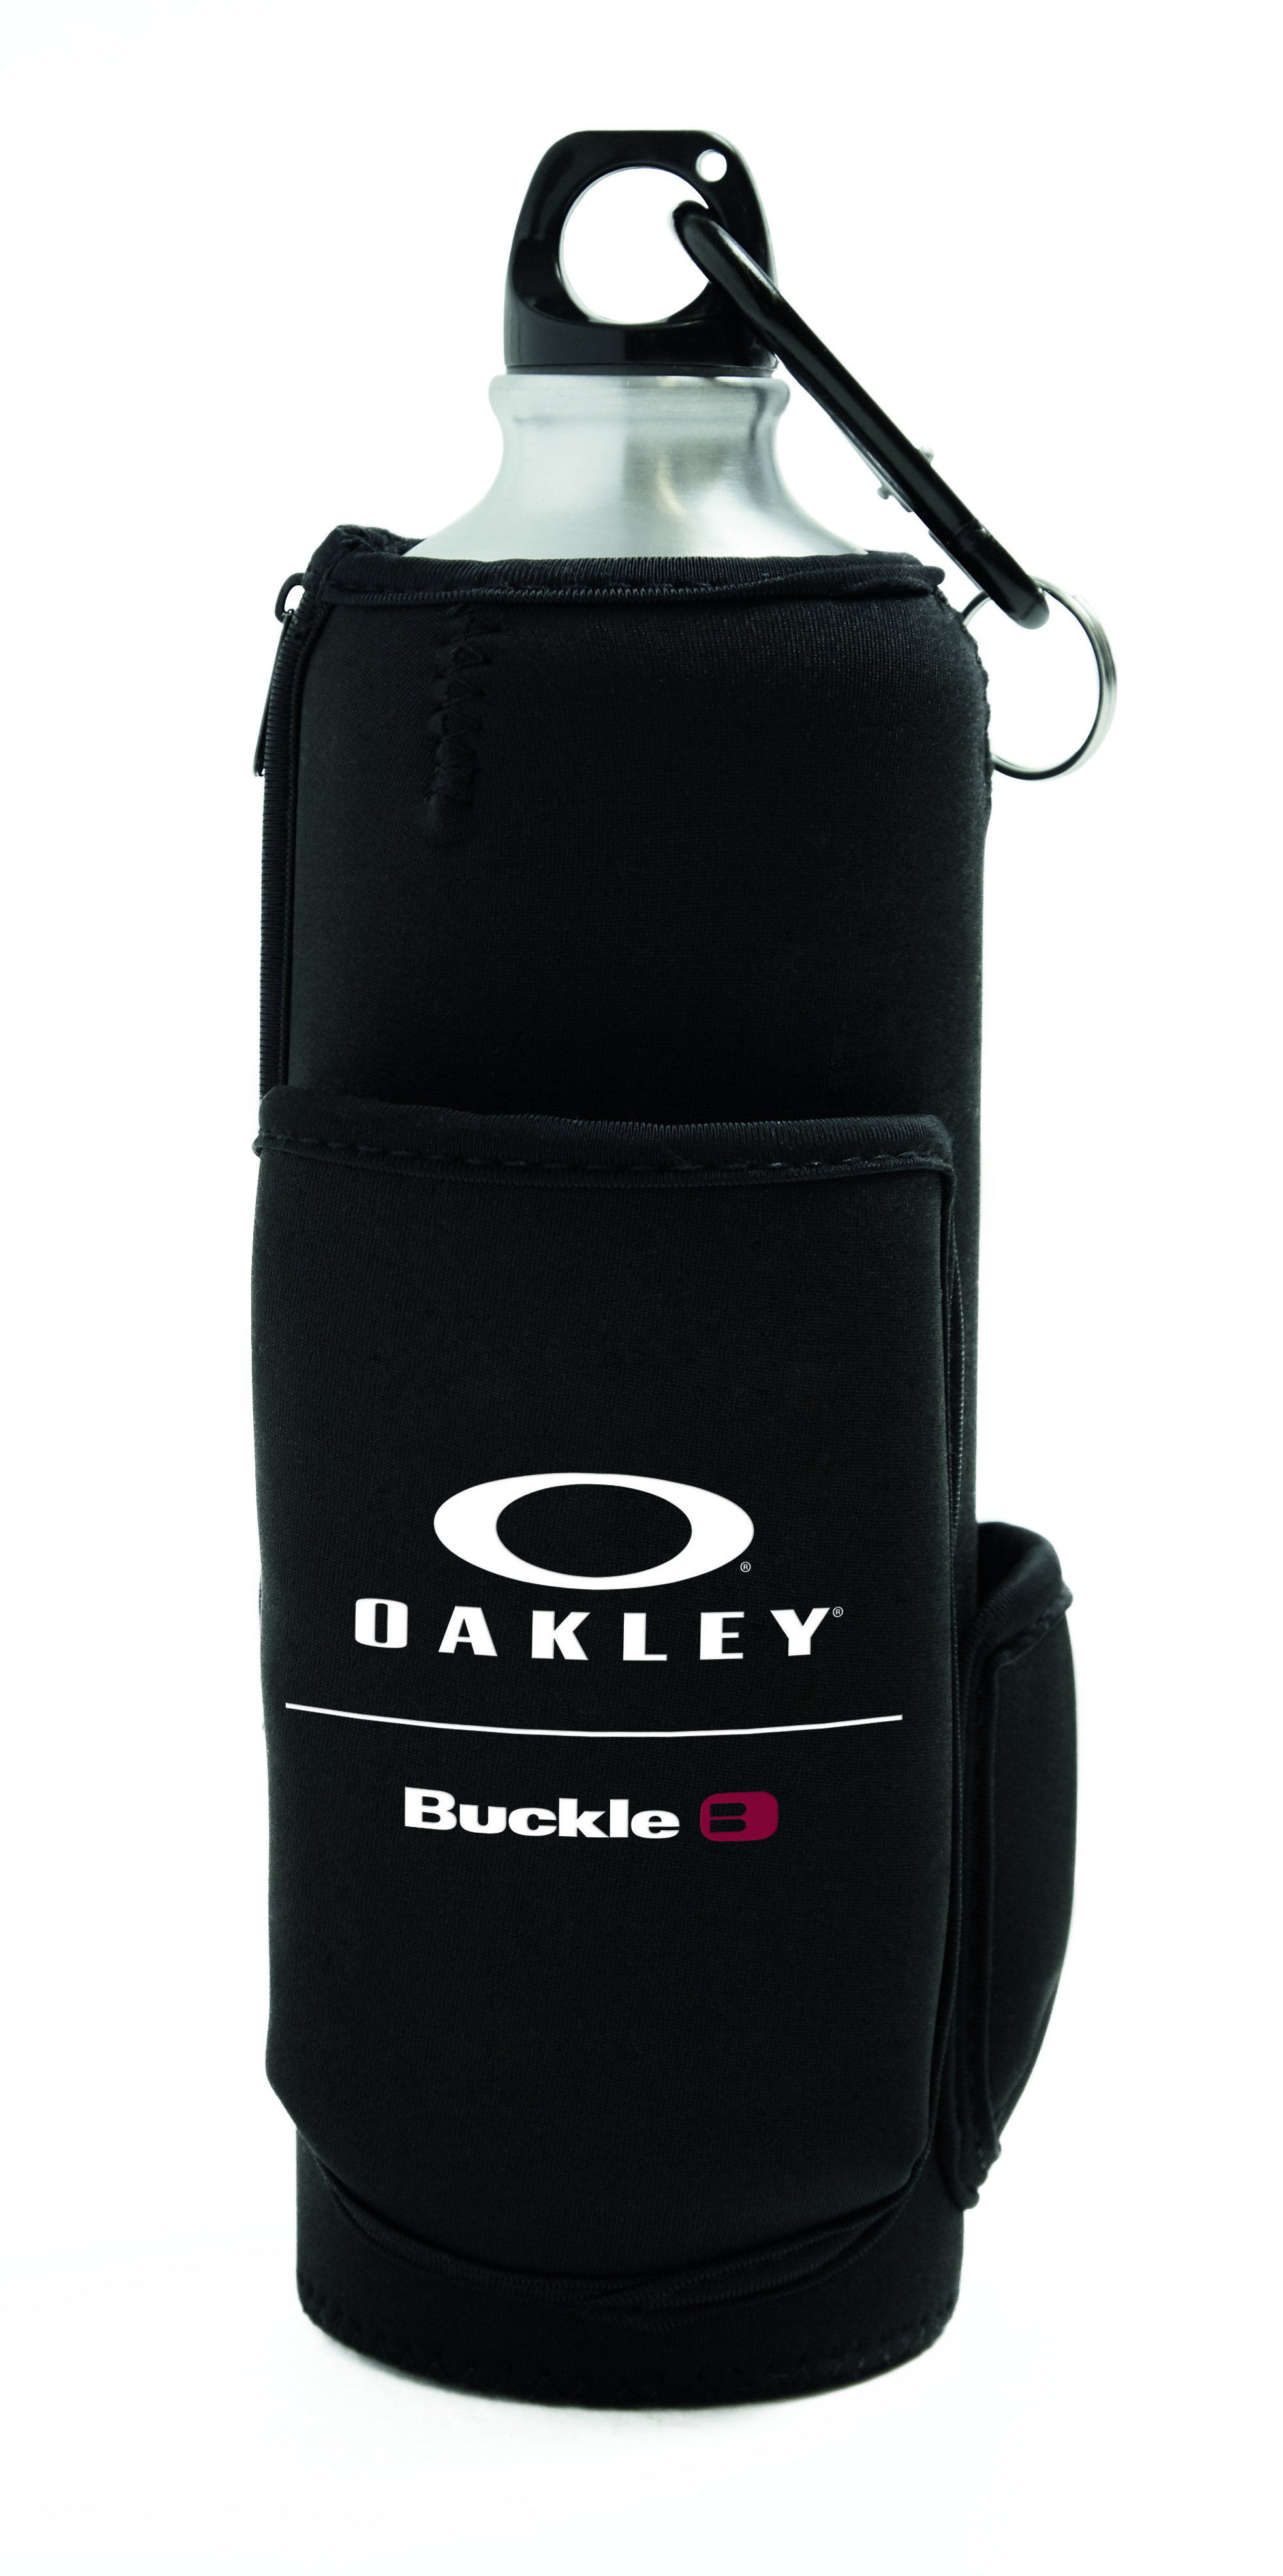 Buckle Brand Event - Oakley Water Bottle